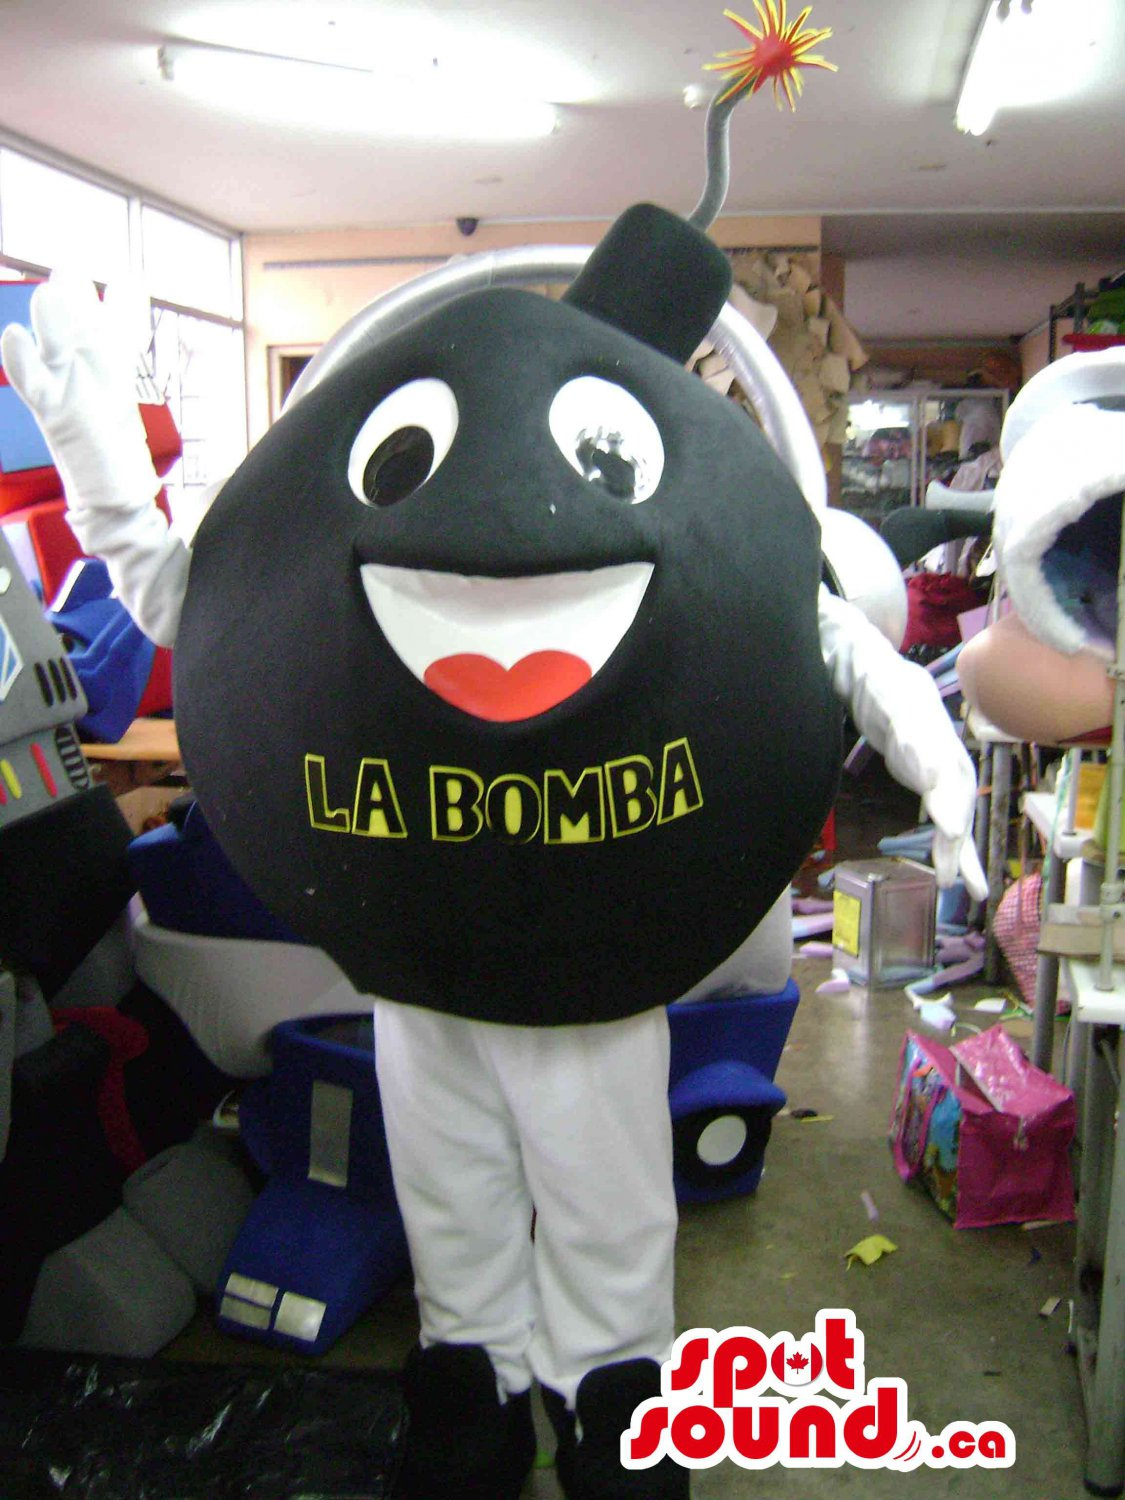 Black Bomb Mascot SpotSound Canada With Letters And Peculiar Face